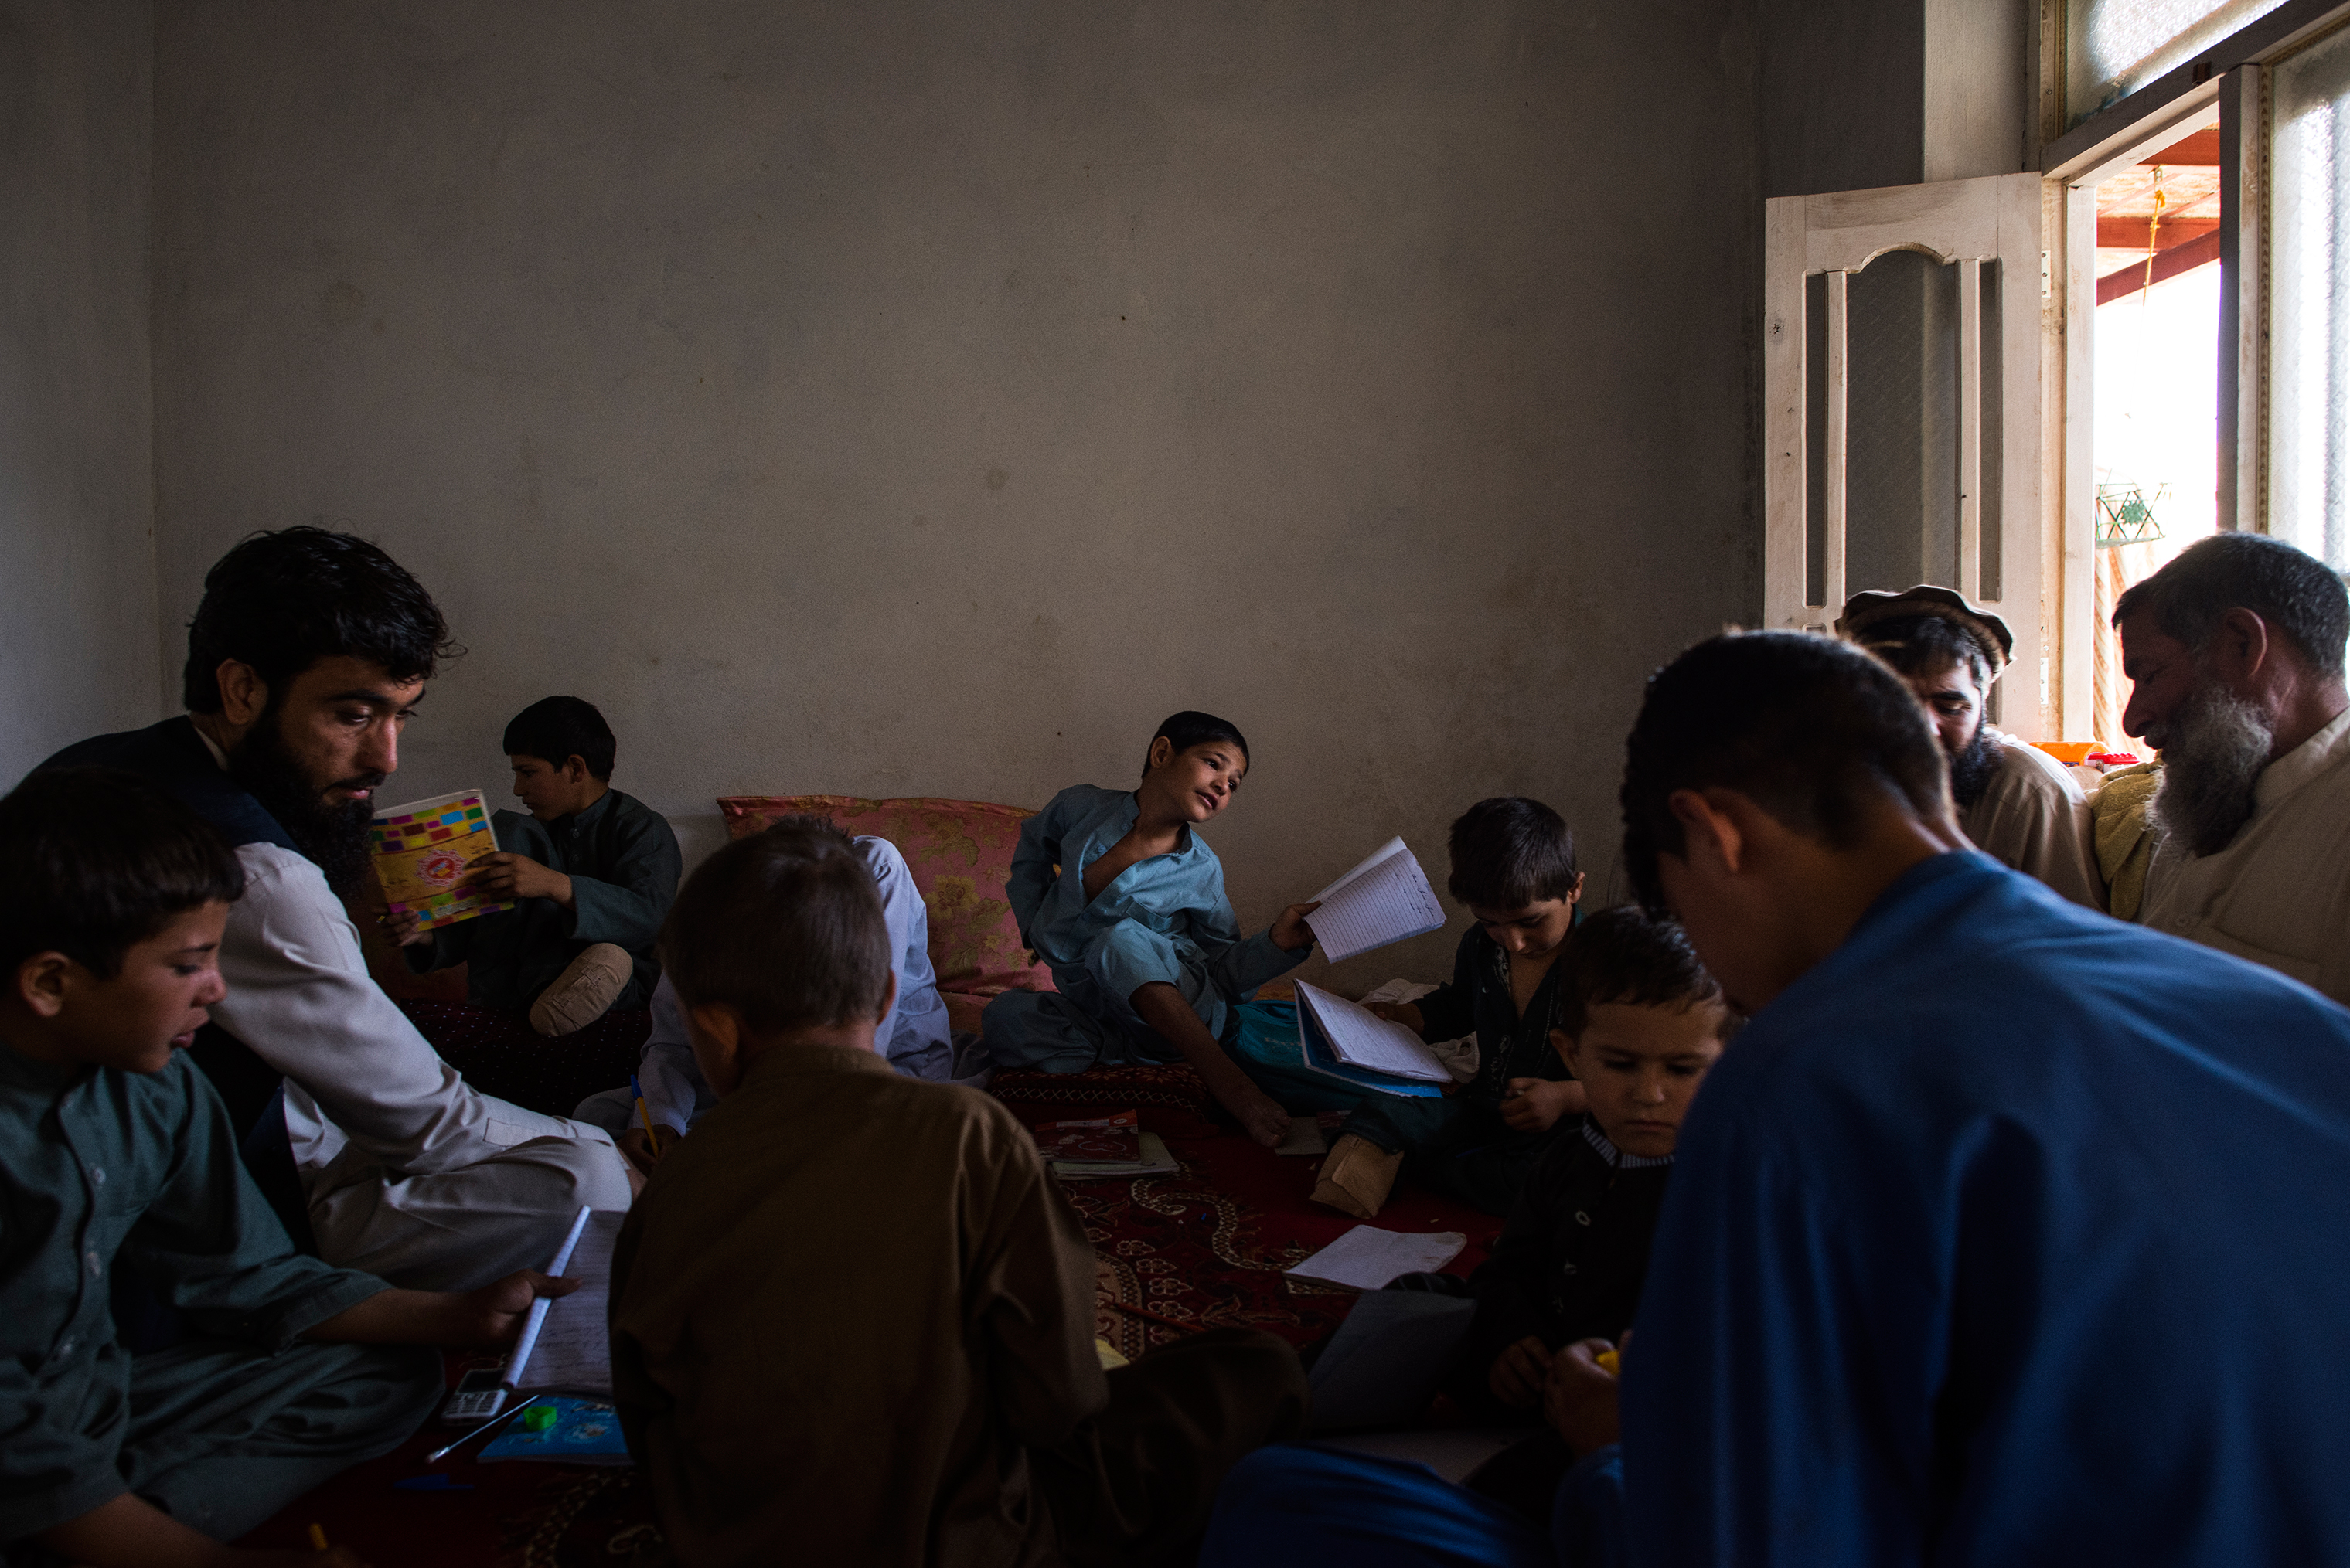 During the children's recovery, they continued to study with a teacher provided by a small charity, Enabled Children. This lesson, in June, was conducted at a neighbor's home as their own was undergoing construction work.